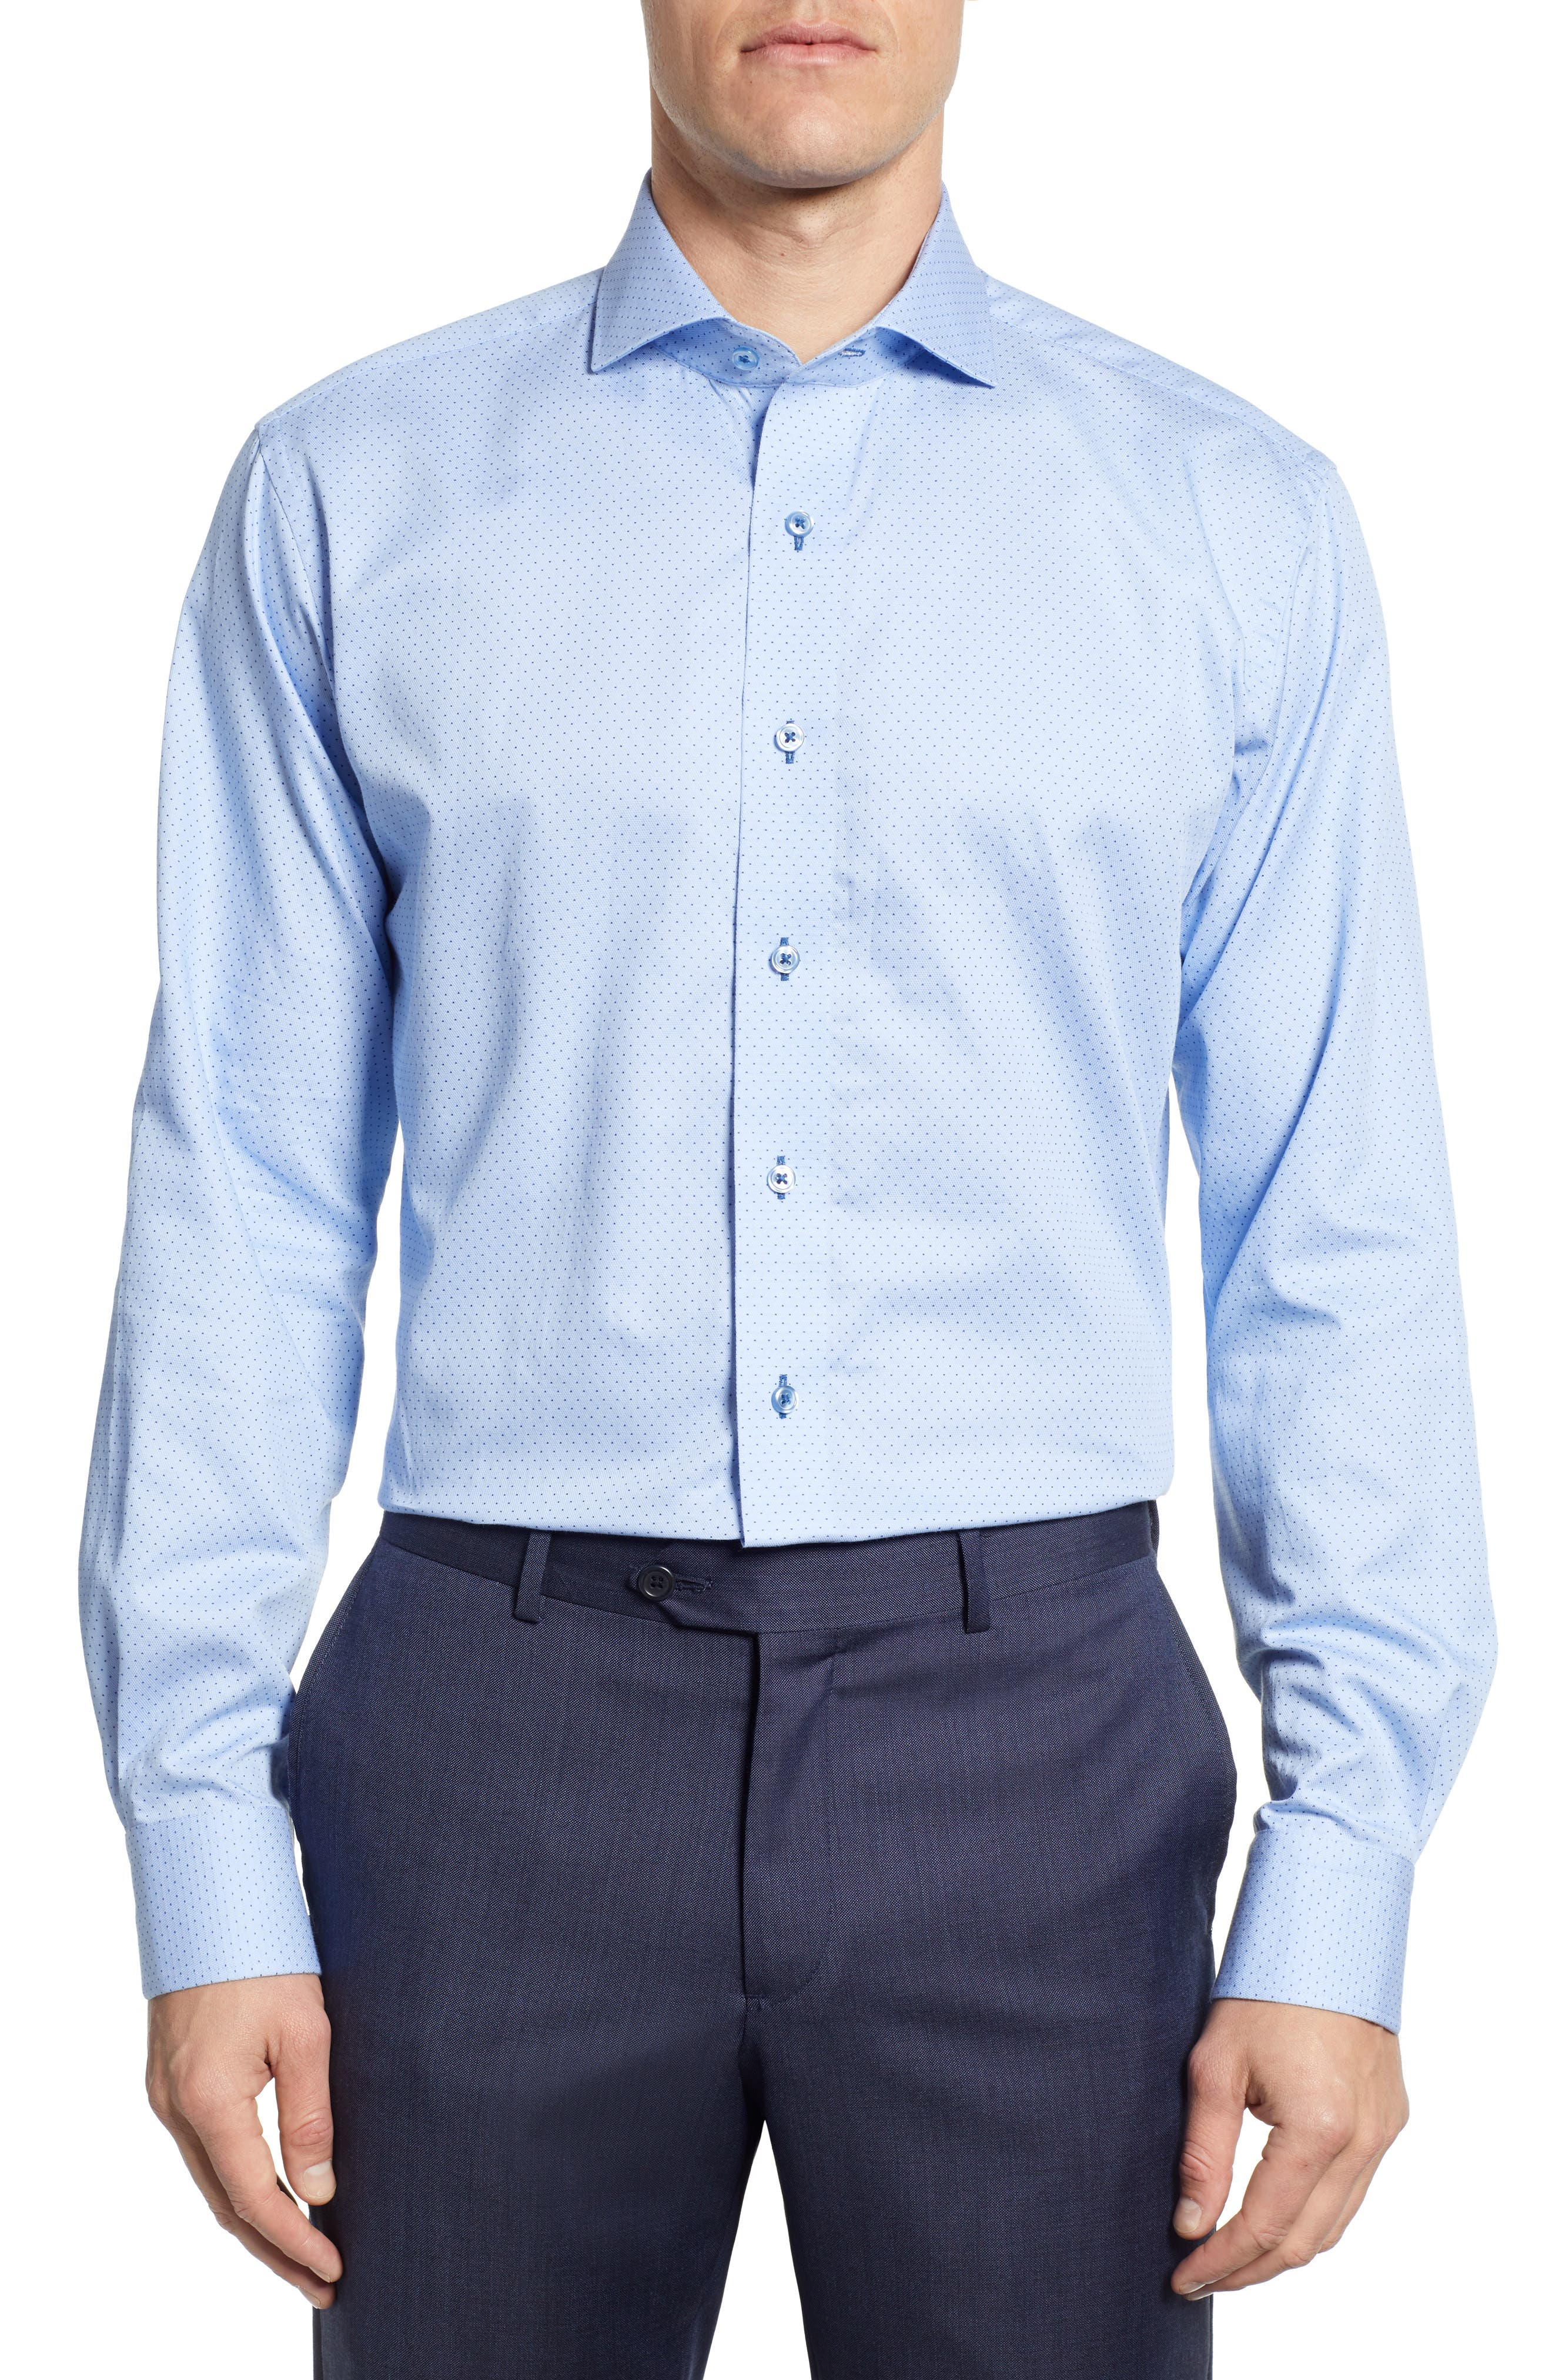 LORENZO UOMO,                             Trim Fit Dot Dress Shirt,                             Main thumbnail 1, color,                             LT BLUE